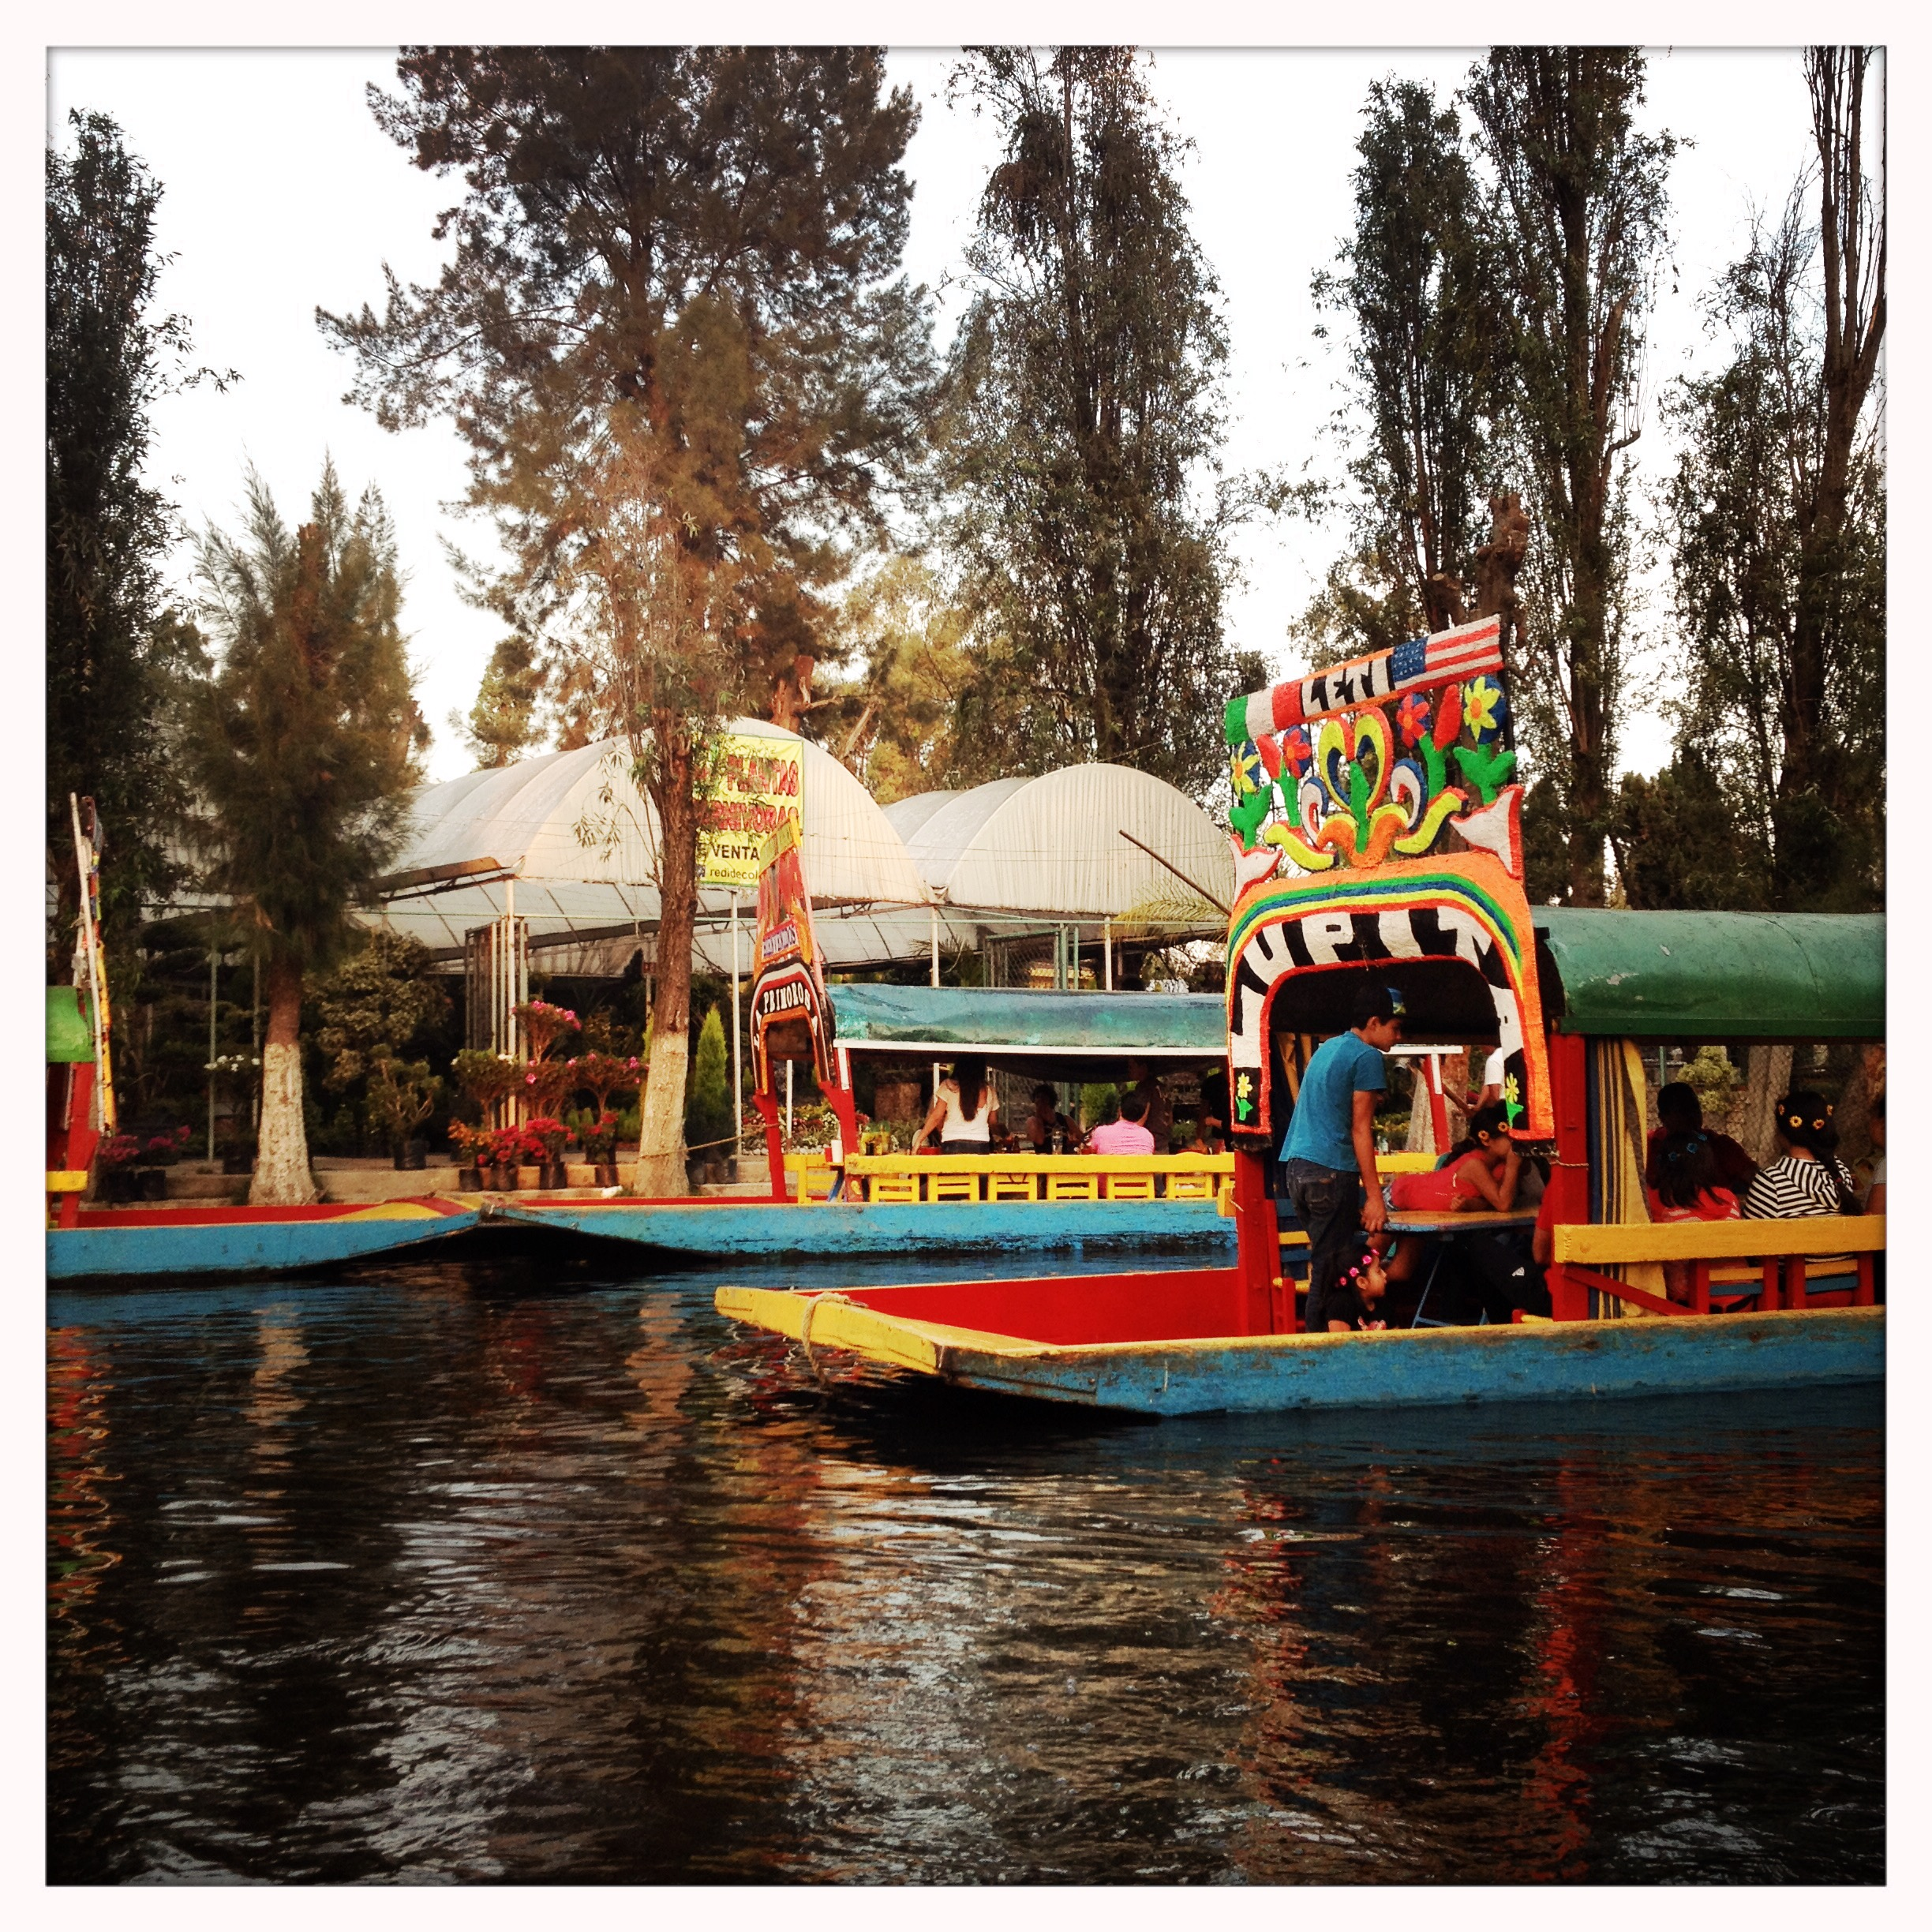 Please allow us to geek out over these floating Mexican restaurants